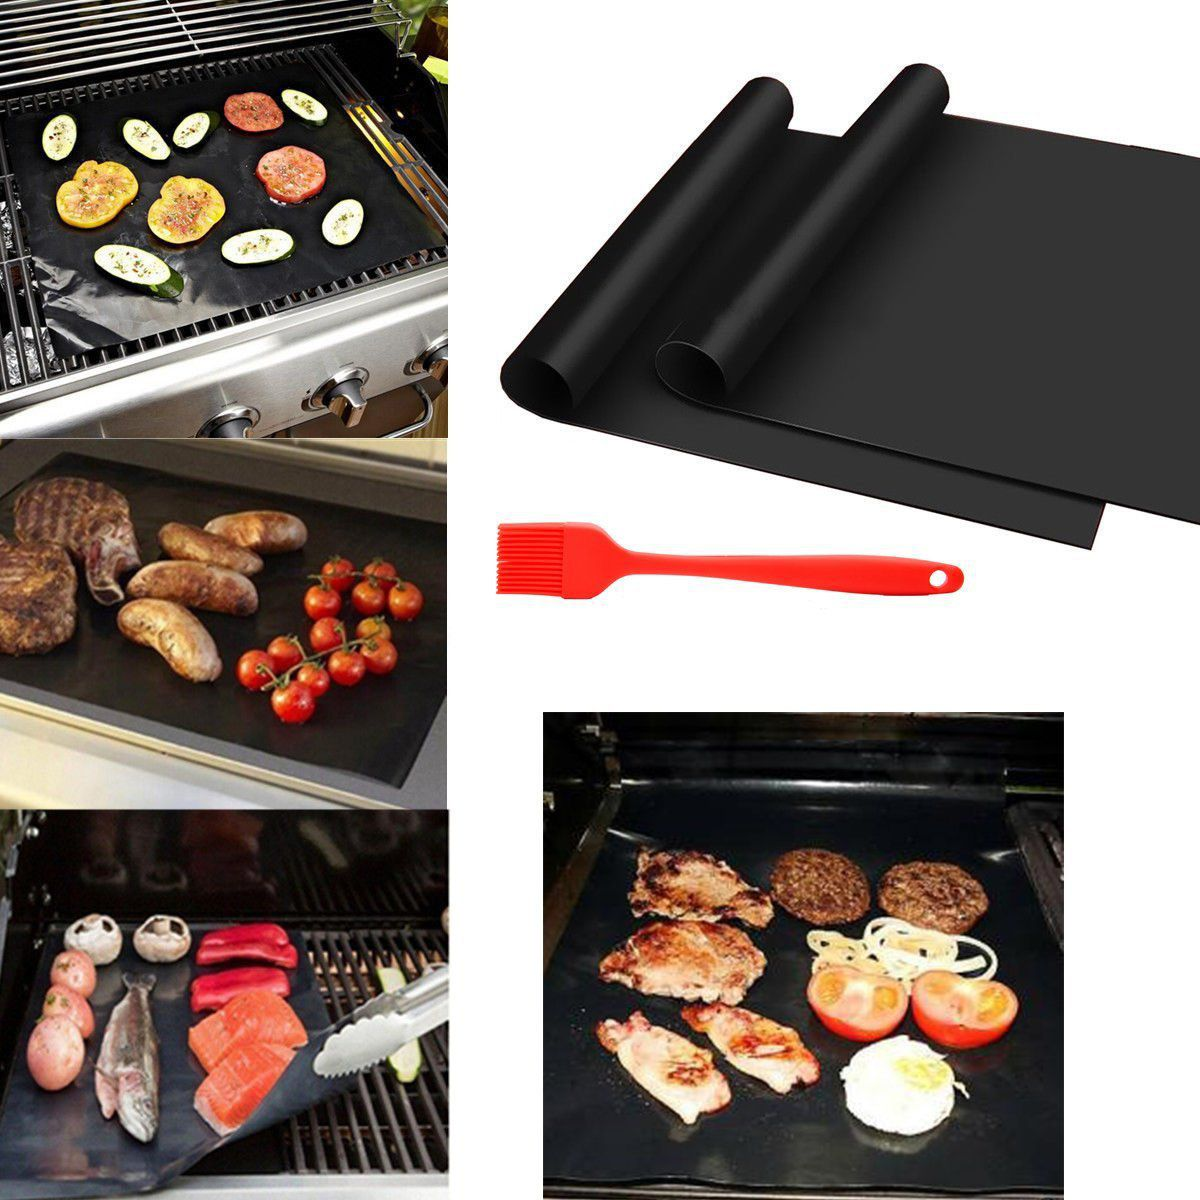 Pin By Smart Home Chef On Smart Home Chef Items Bbq Grill Mats Bbq Accessories Barbecue Party